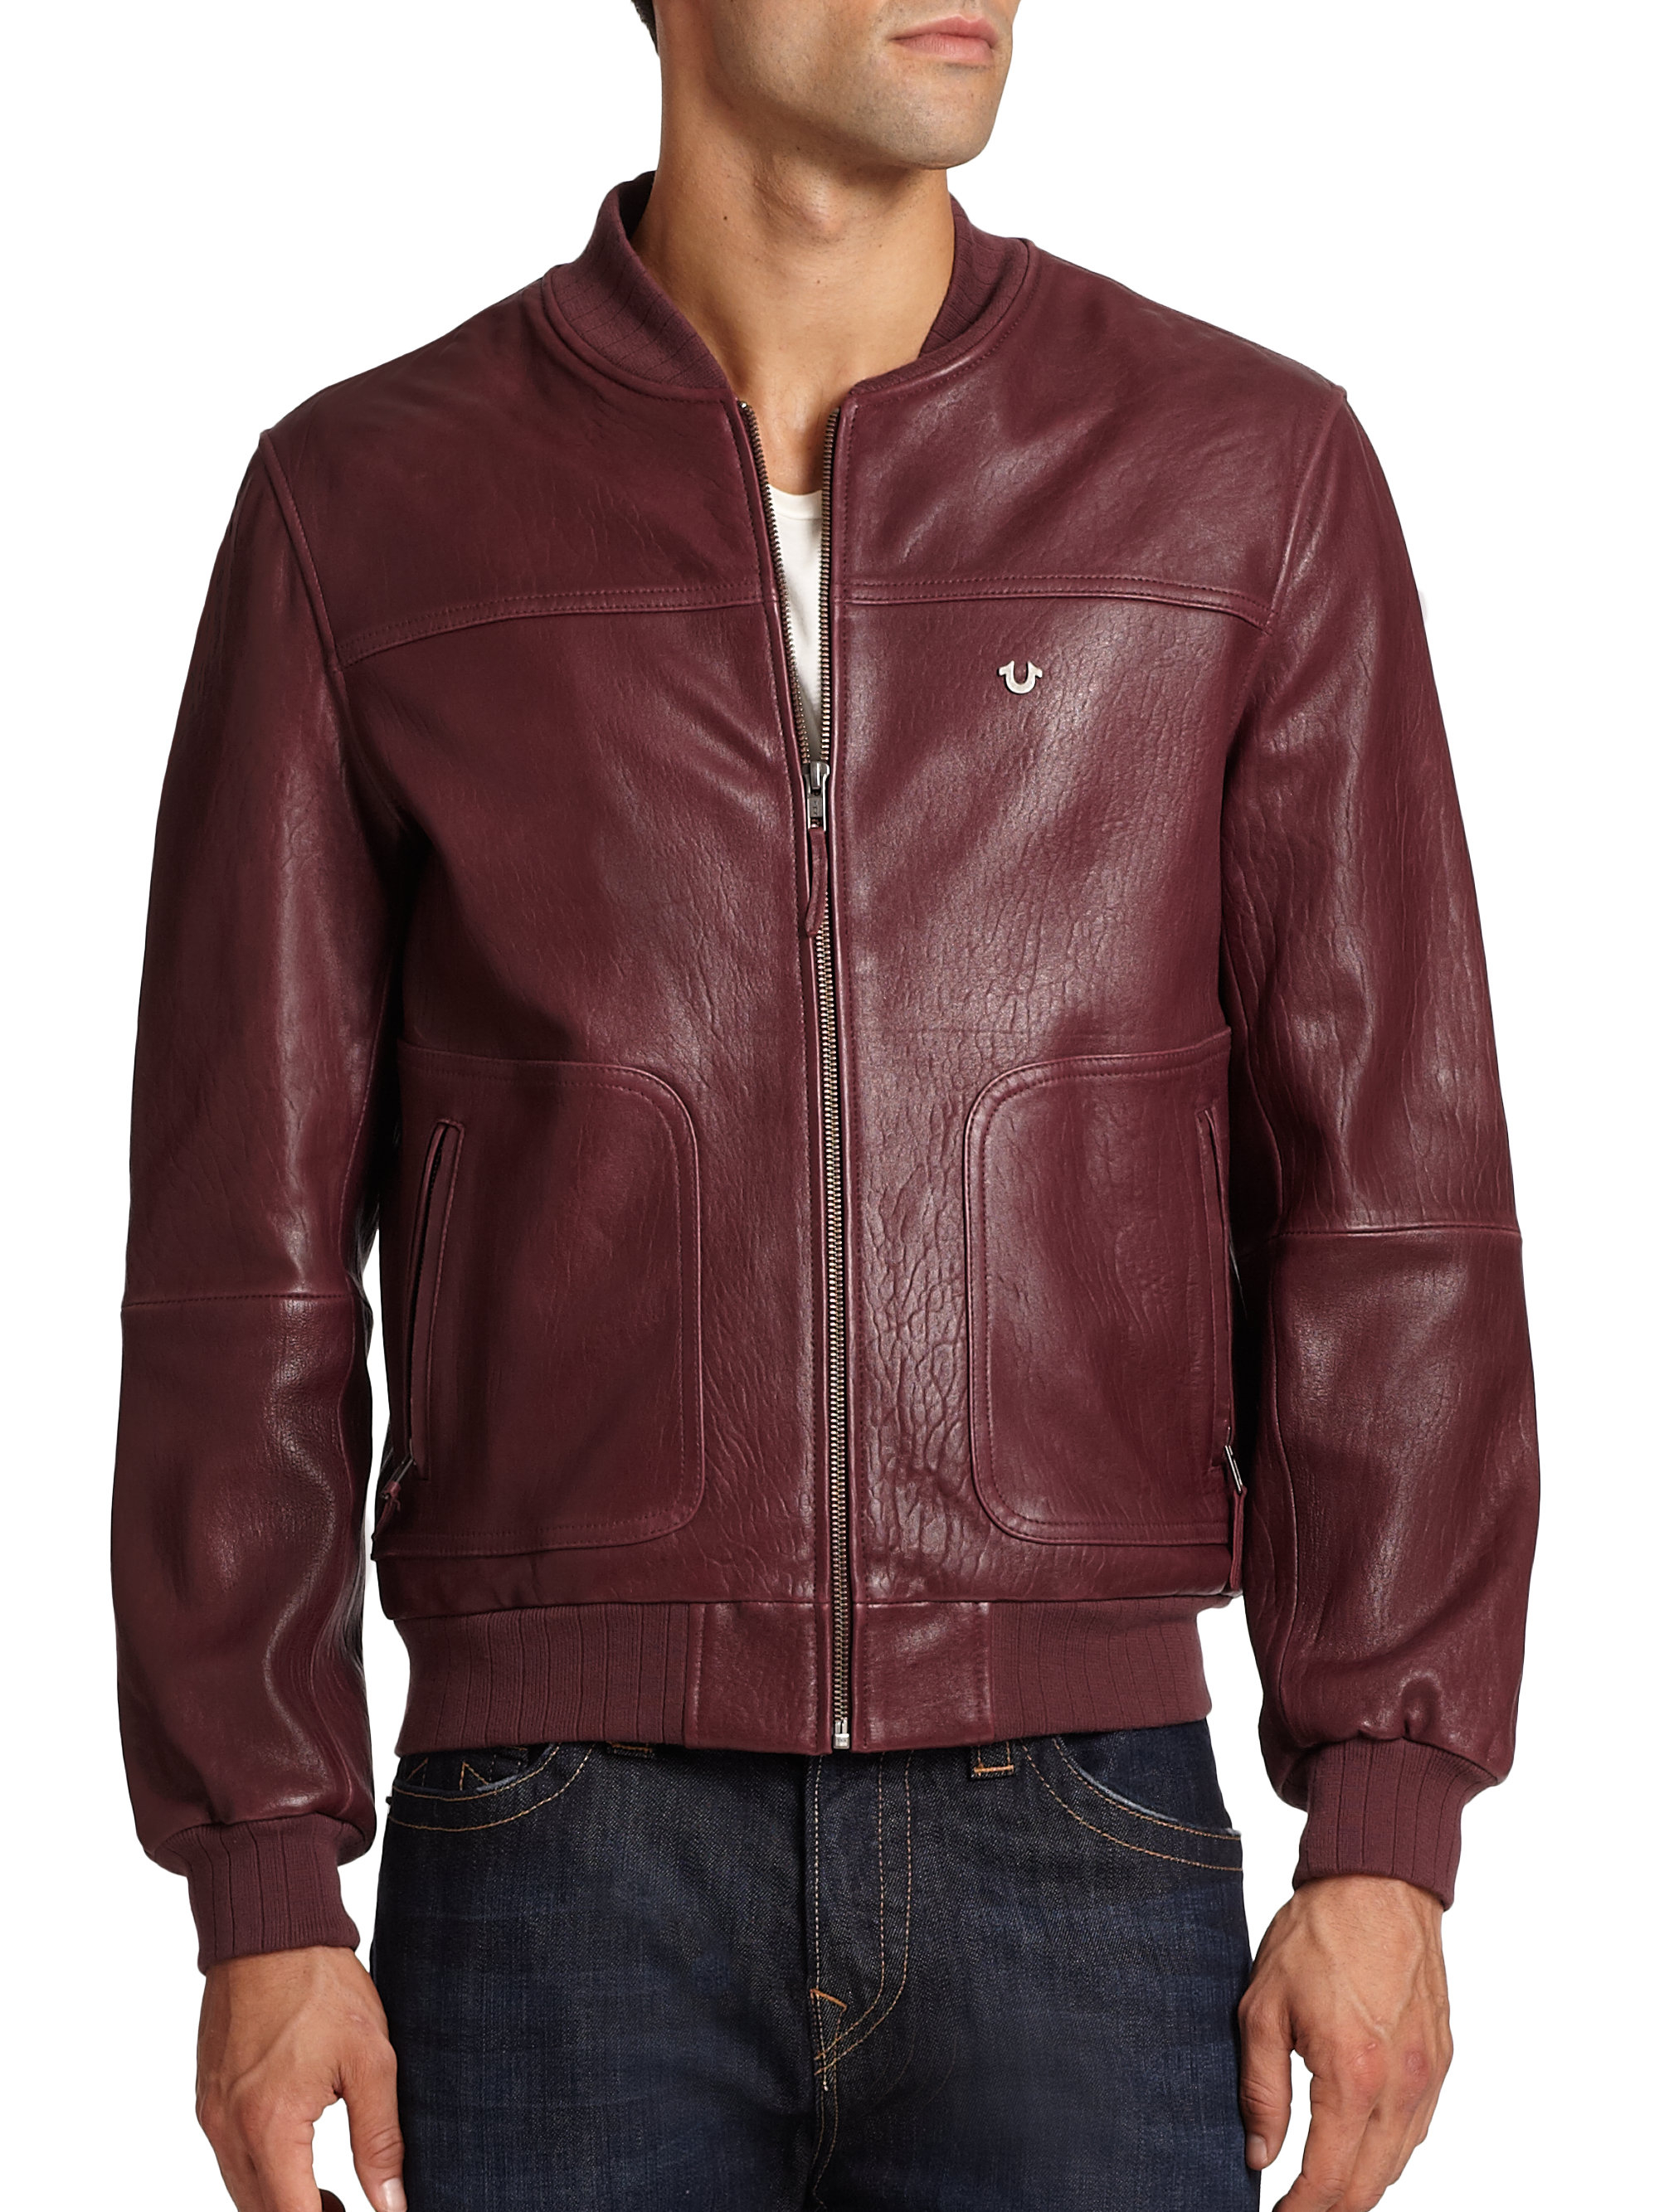 Mens Baseball Jacket Leather Sleeves